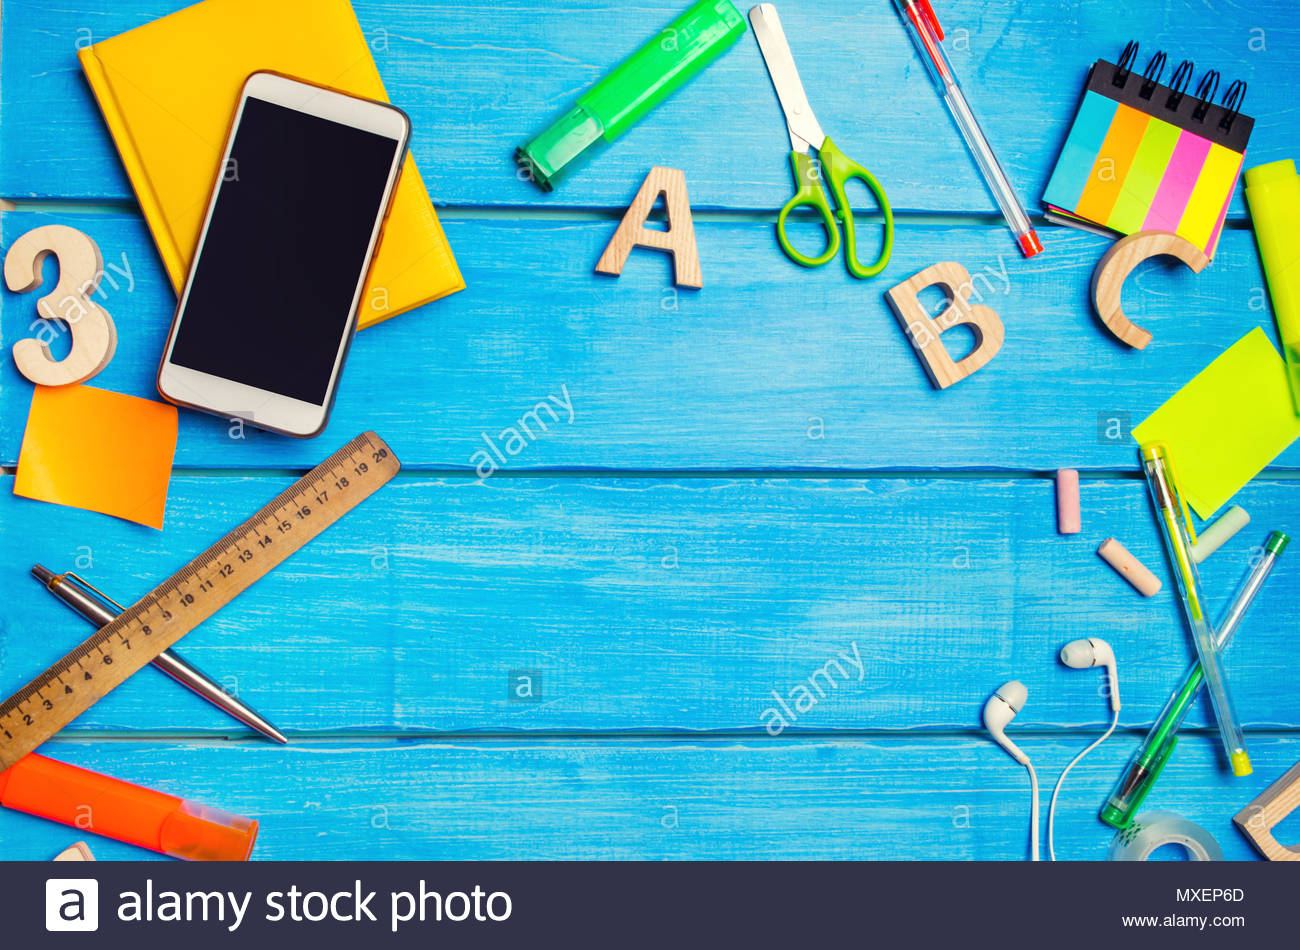 A pile of school supplies on a blue wooden table background The 1300x950